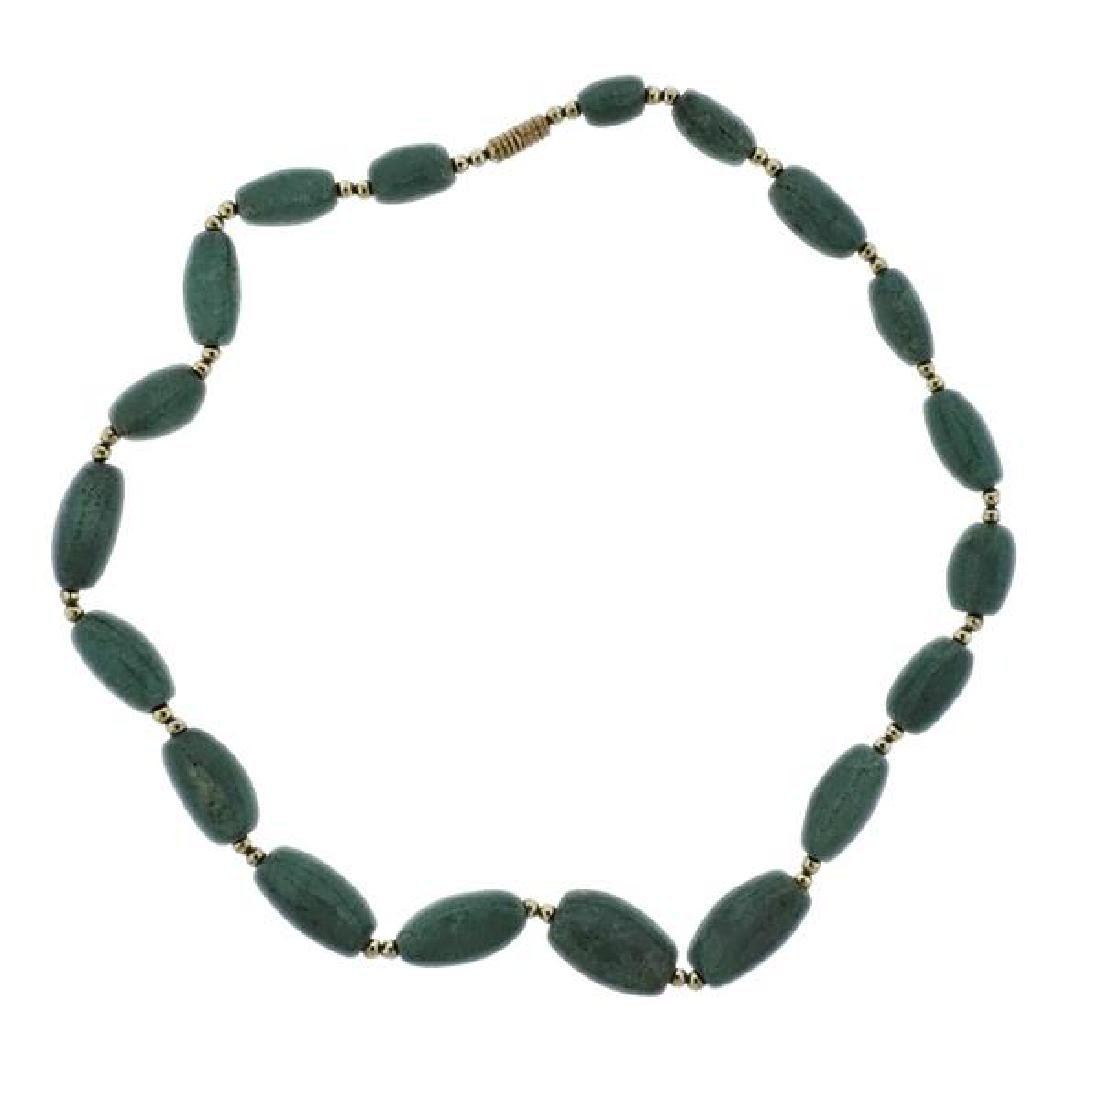 10K Gold Green Stone Necklace